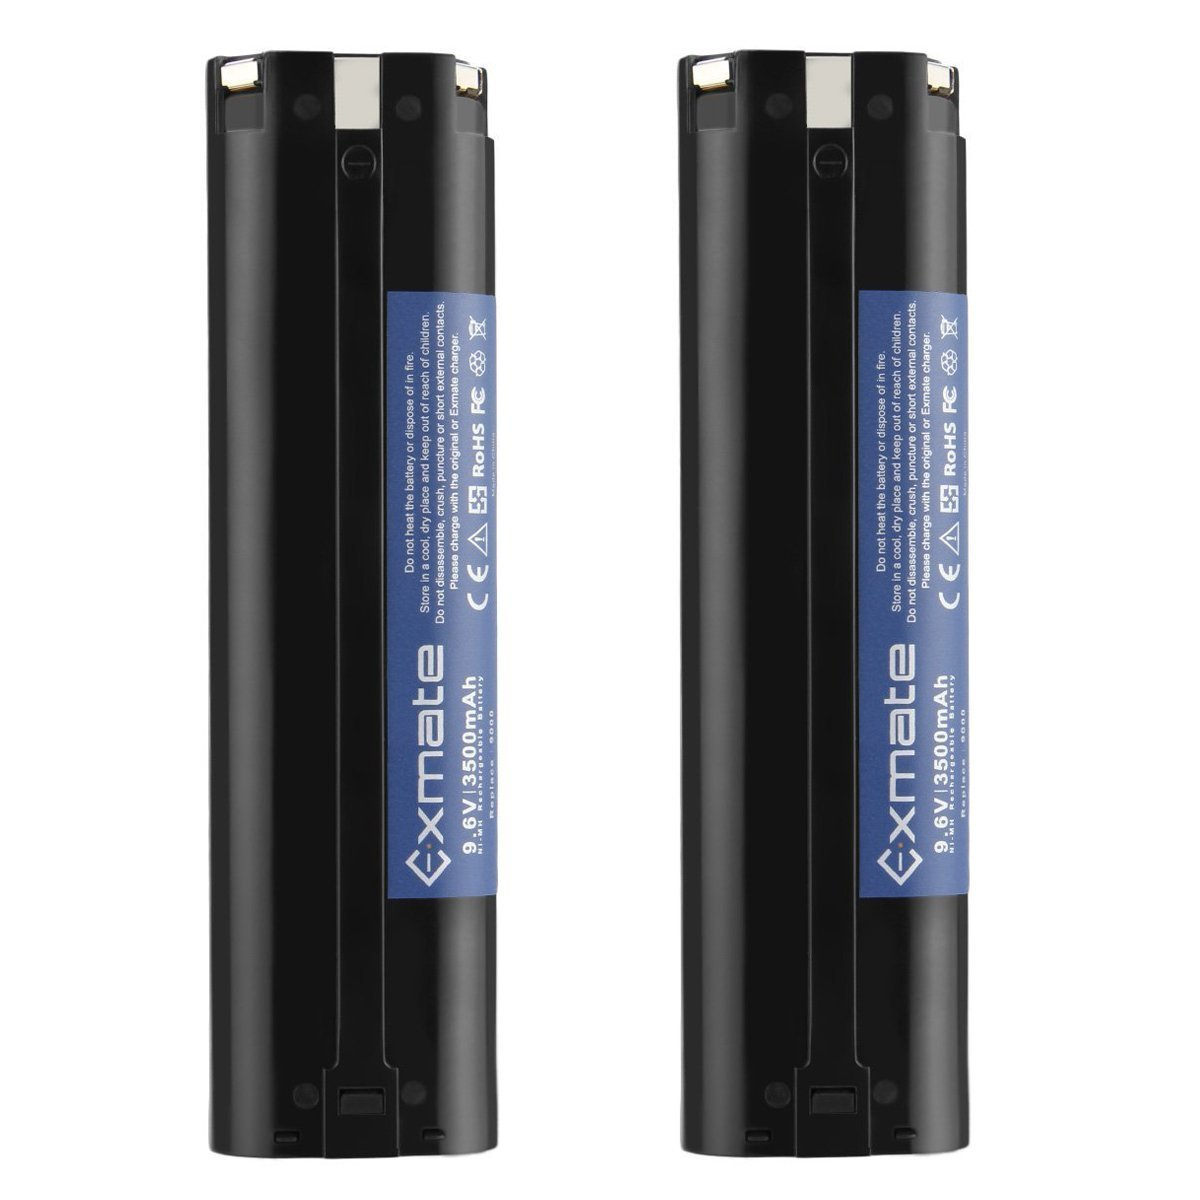 Exmate 2PCS 9.6V 3.5Ah Ni-MH Replacement Battery Compatible with Makita 9000 9001 9002 9033 9600 193890-9 192696-2 632007-4 191681-2 192533-0 4093D 4093DW 5090D 5090DW 6095D High Capacity Battery Pack